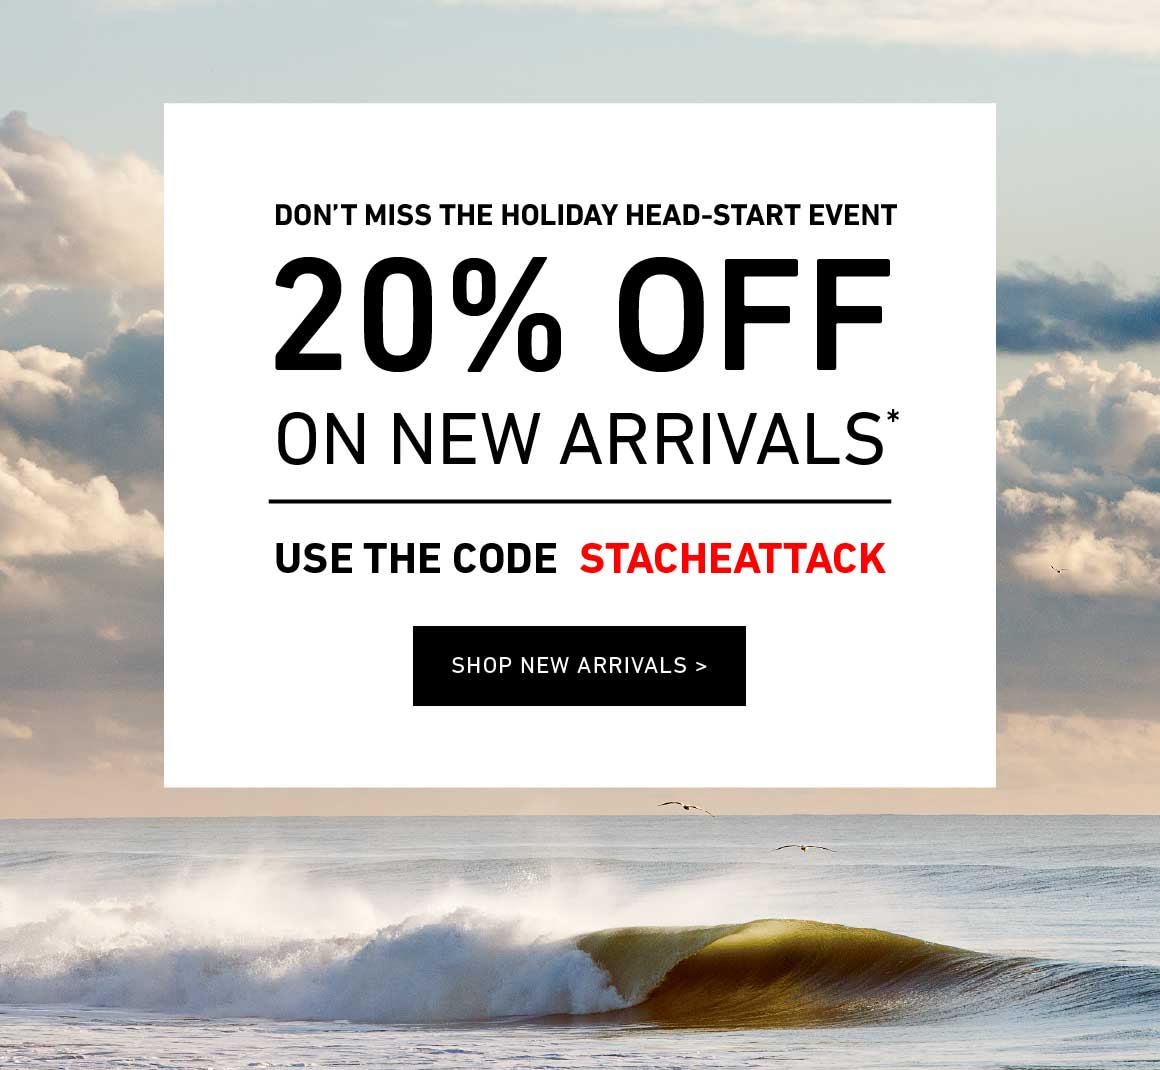 Extra 20% Off New Arrivals! Enter Code: STACHEATTACK